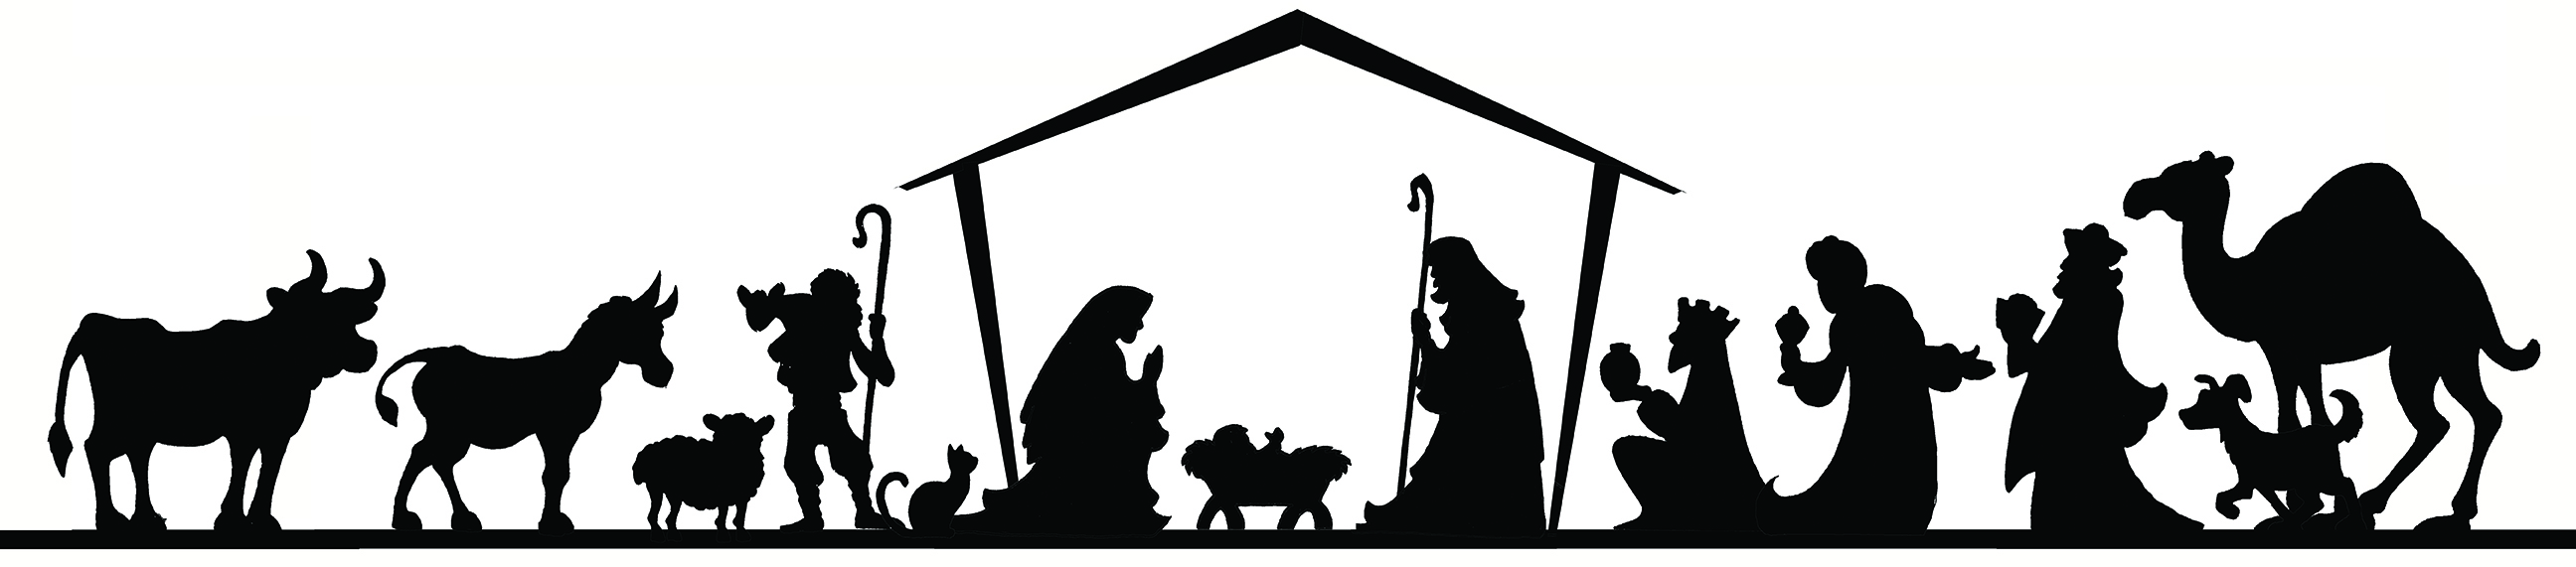 Nativity Black And White Clipart.